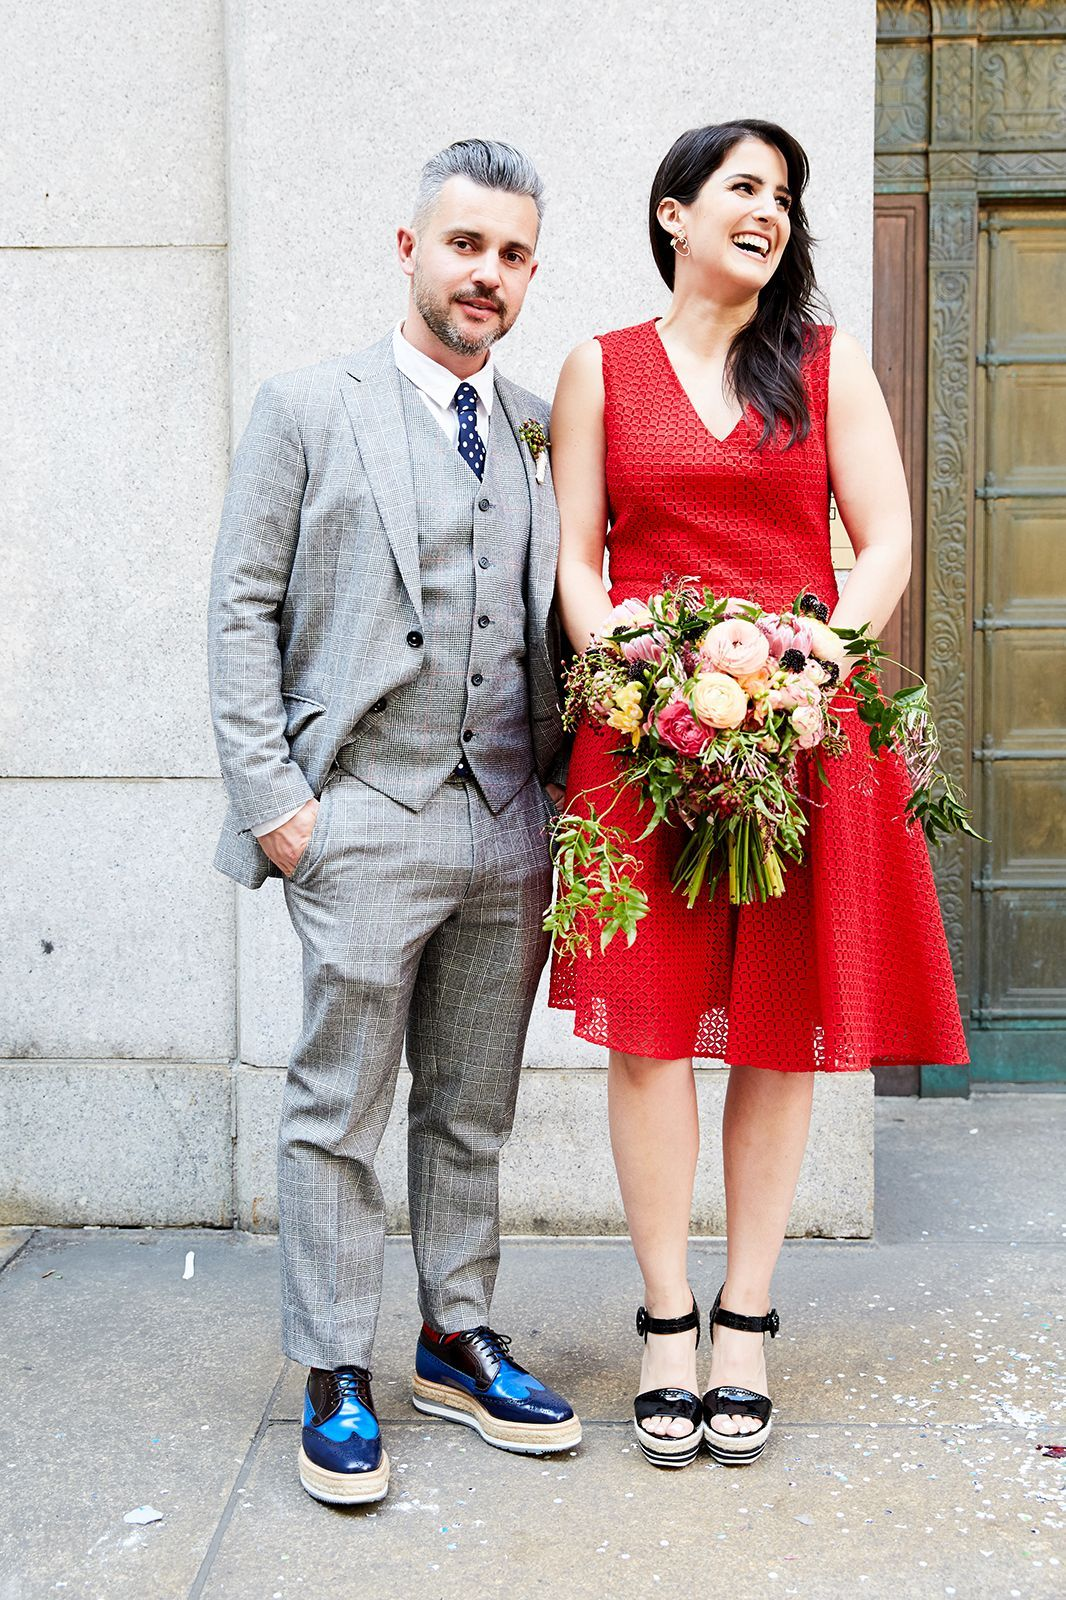 Courthouse Wedding Dresses in Red